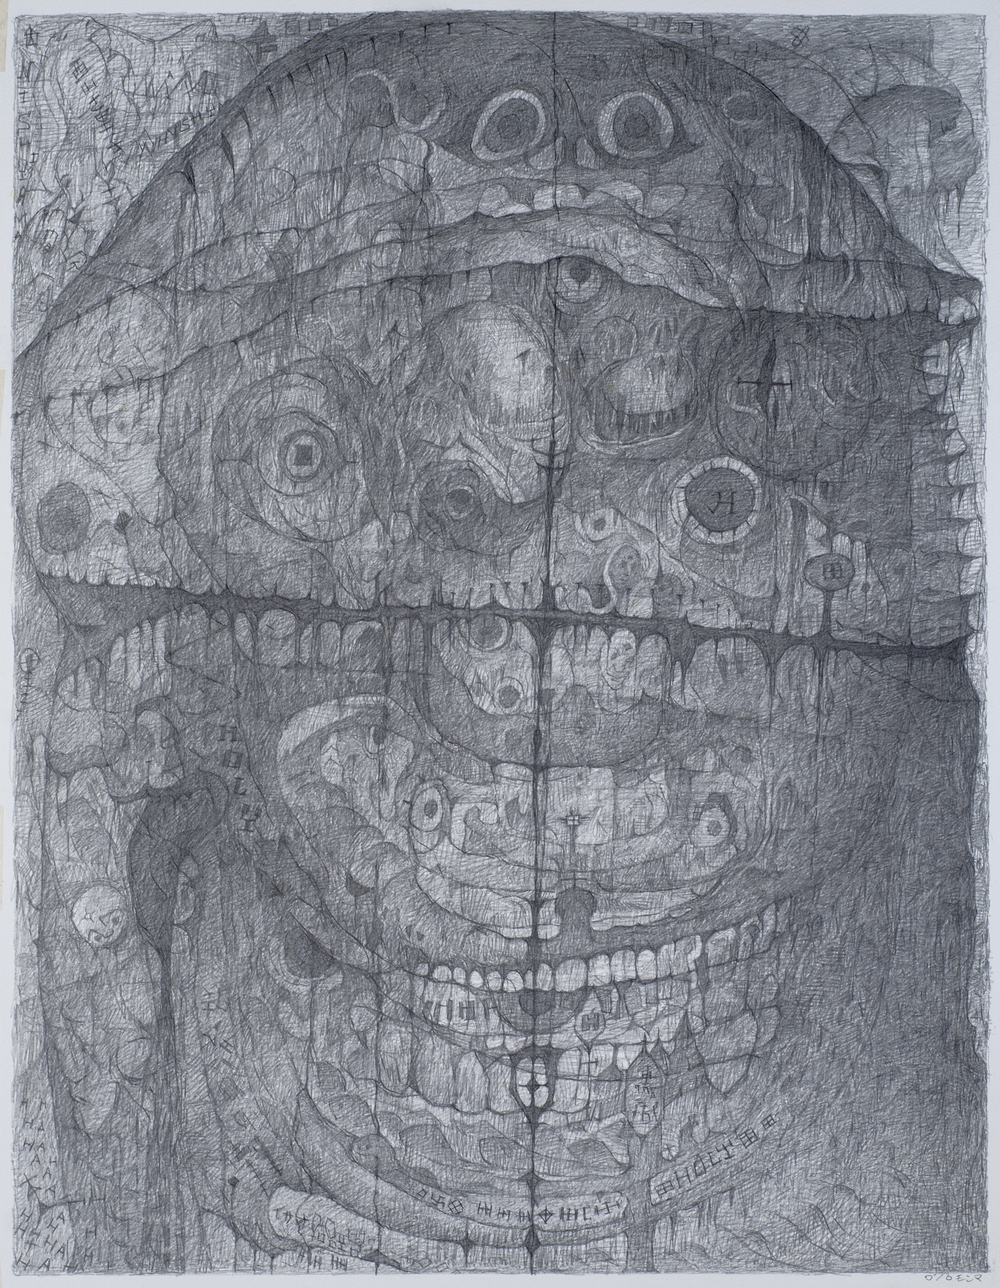 M'onma Untitled, 2000 Graphite on paper 15.16 x 11.81 inches  /  38.5 x 30 cm  /  IMo 3